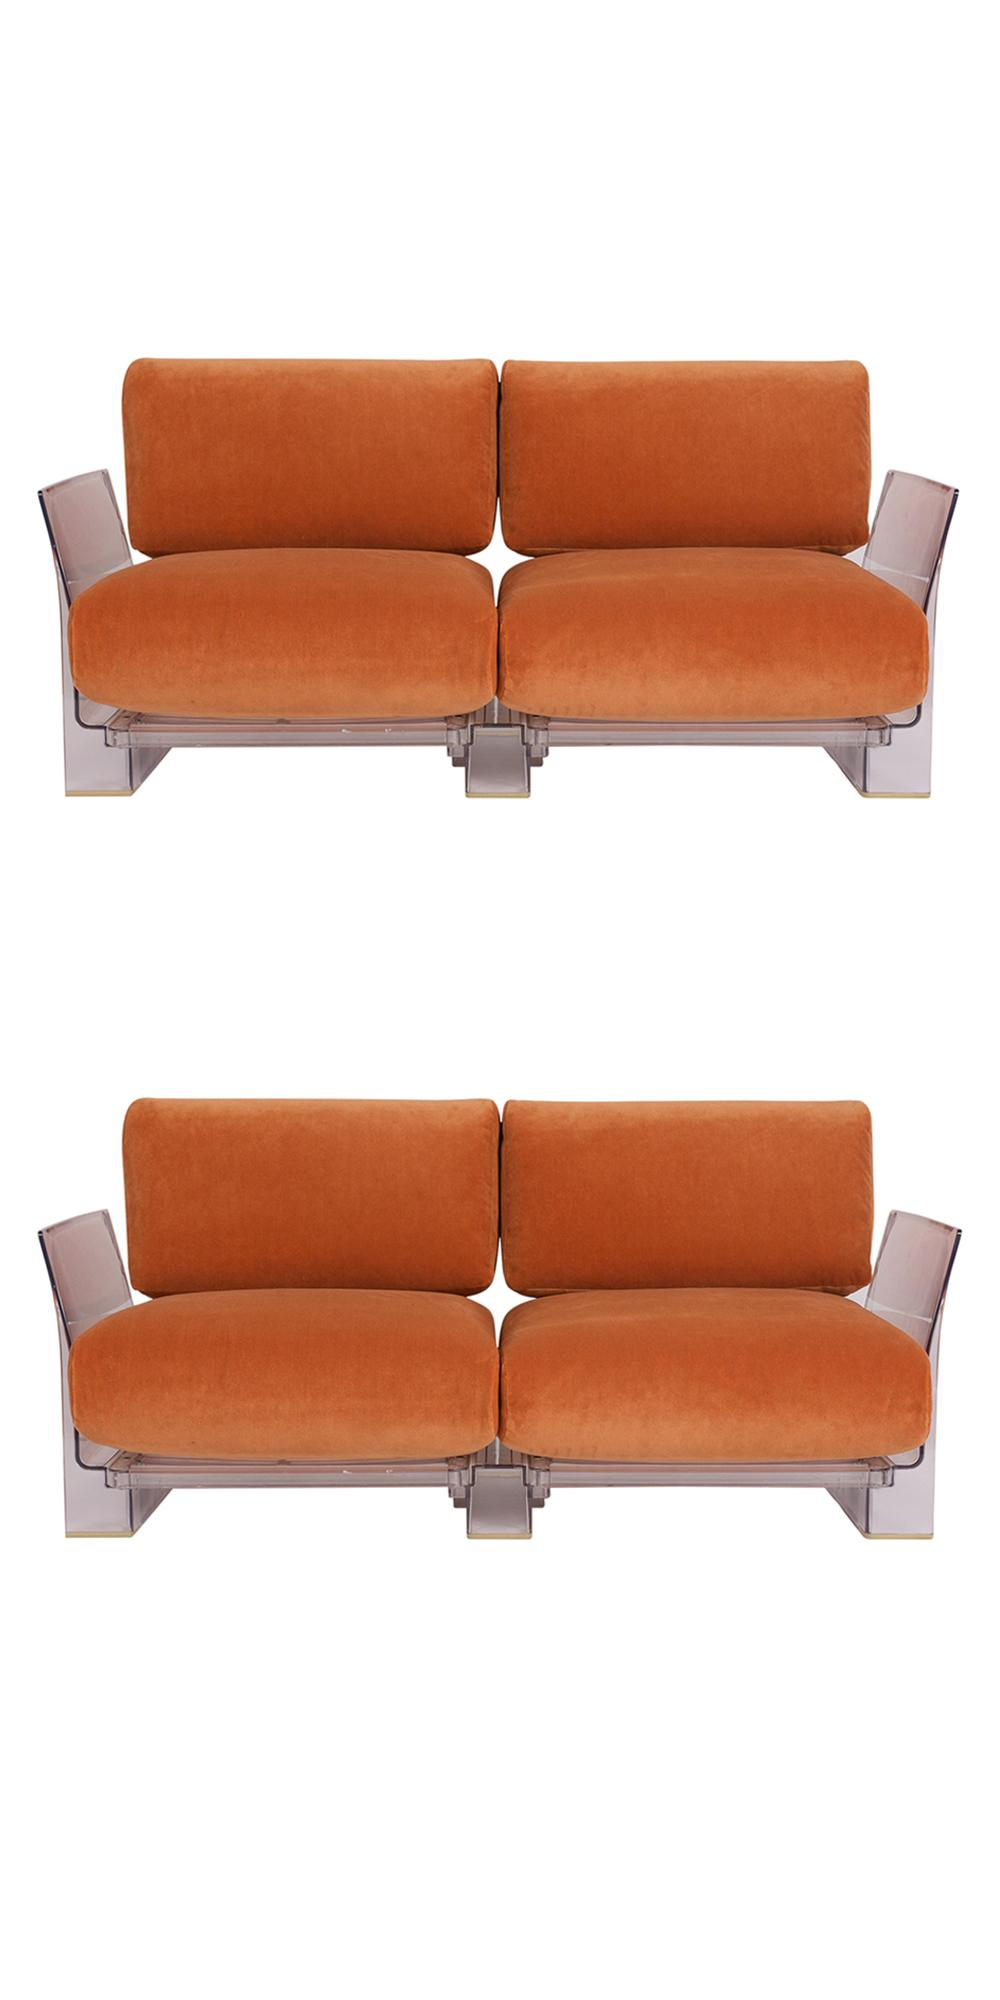 Kartell Sofa Pair Of Lucite Love Seats Sofas By Piero Lissoni For Kartell